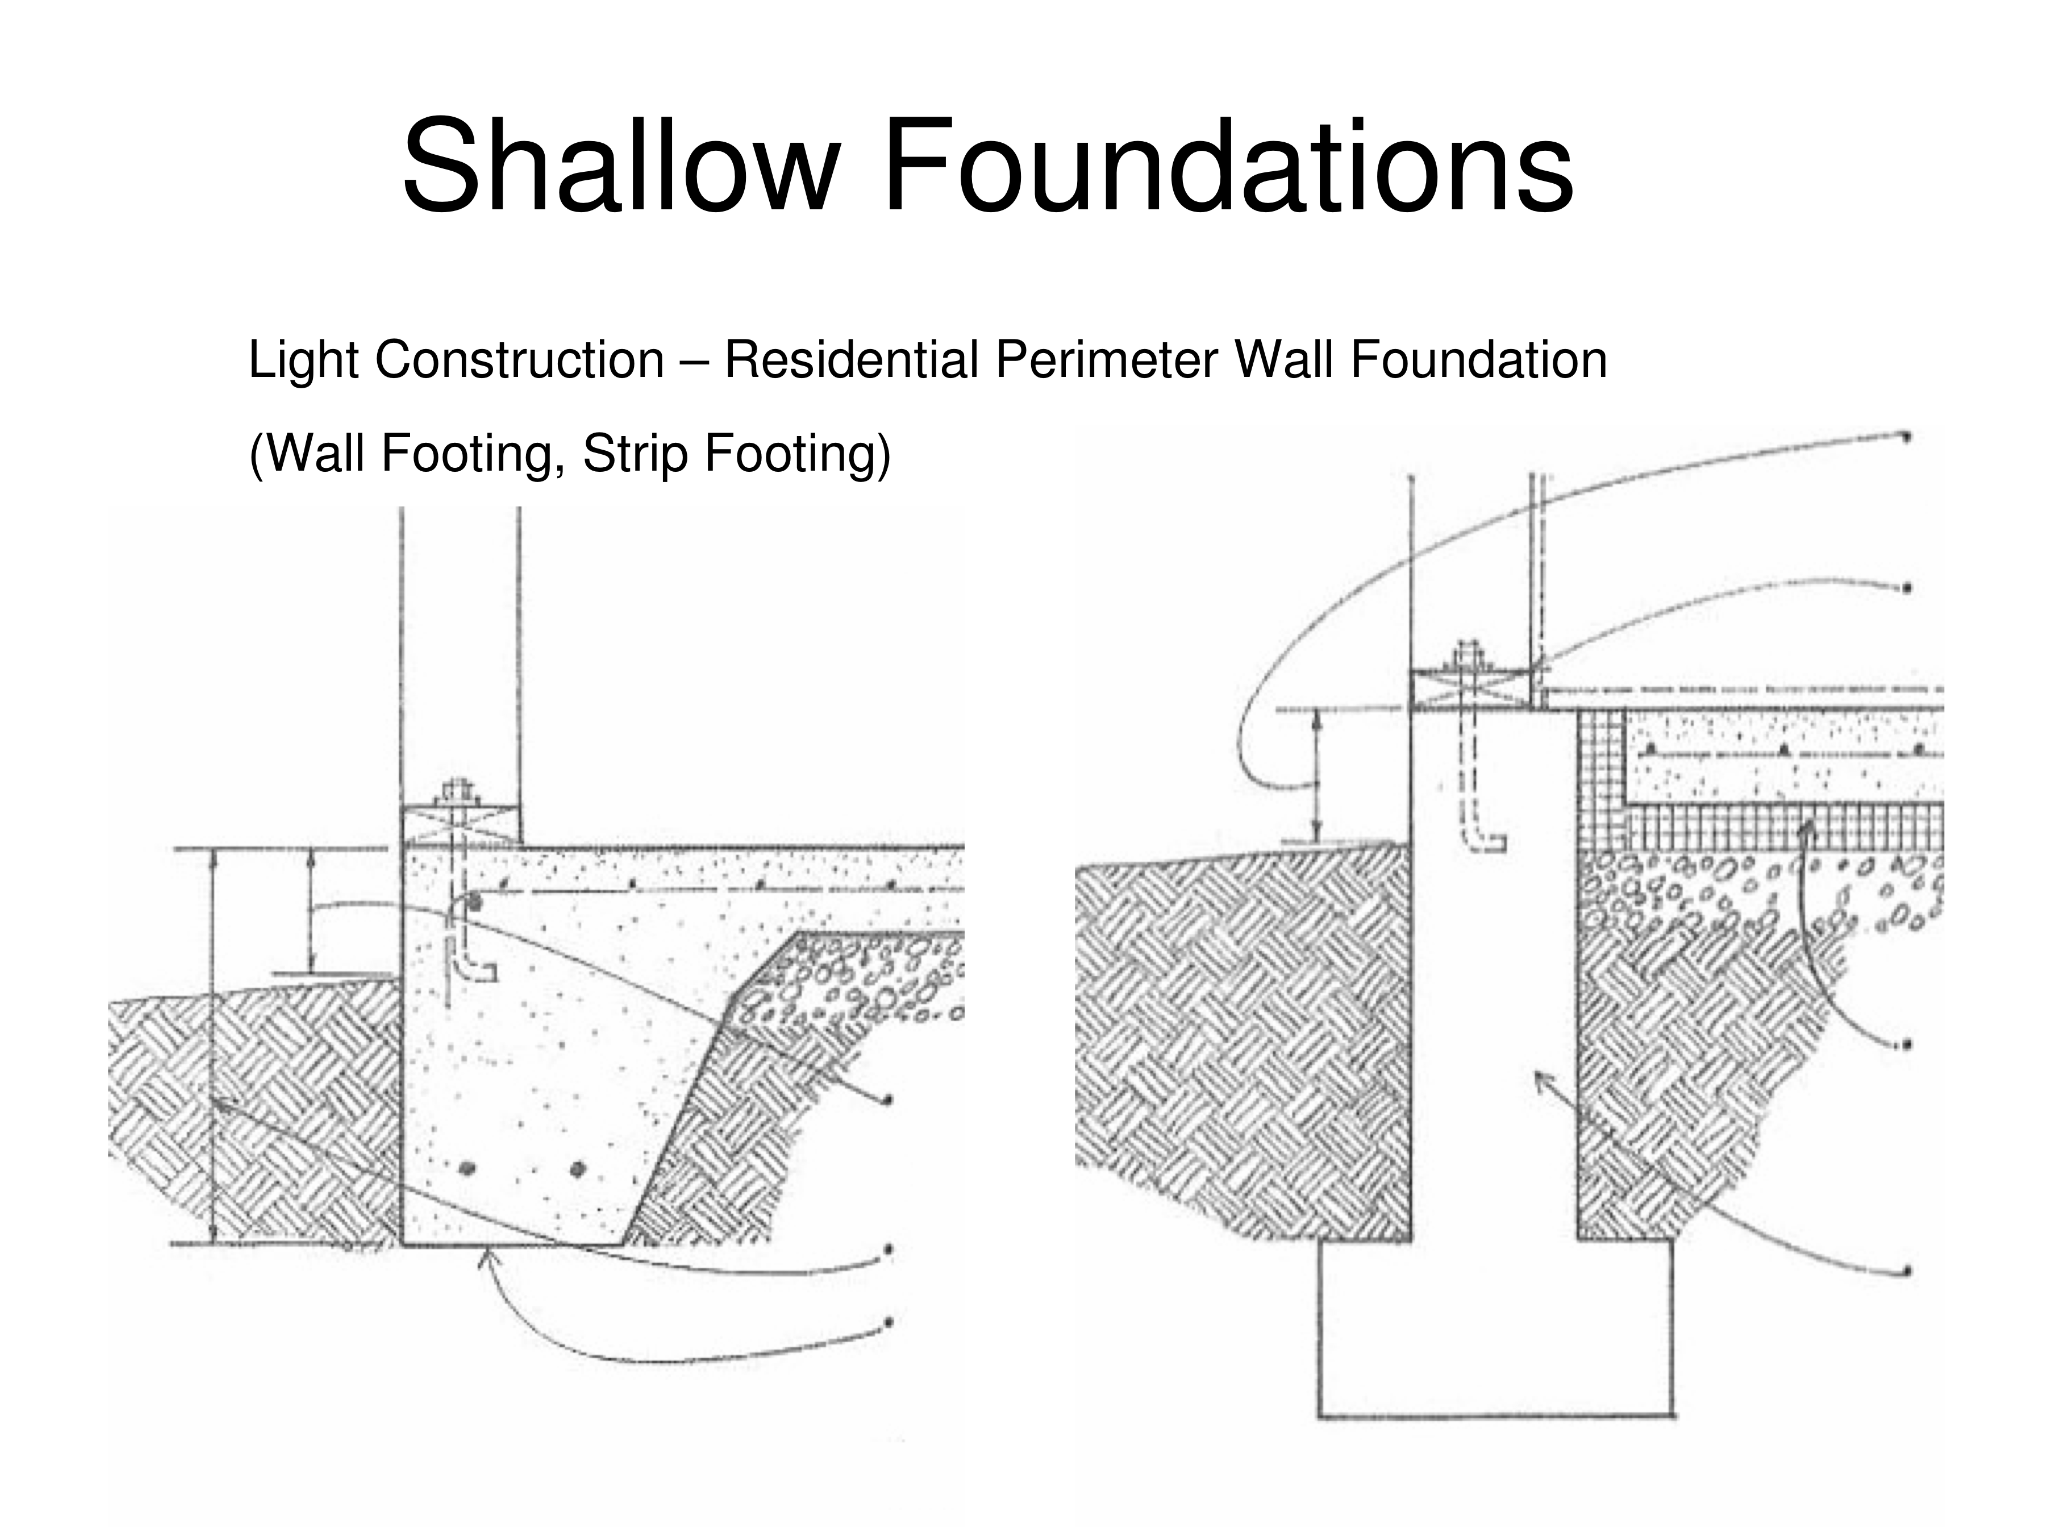 A Wall Footing Or Strip Footing Is A Continuous Strip Of